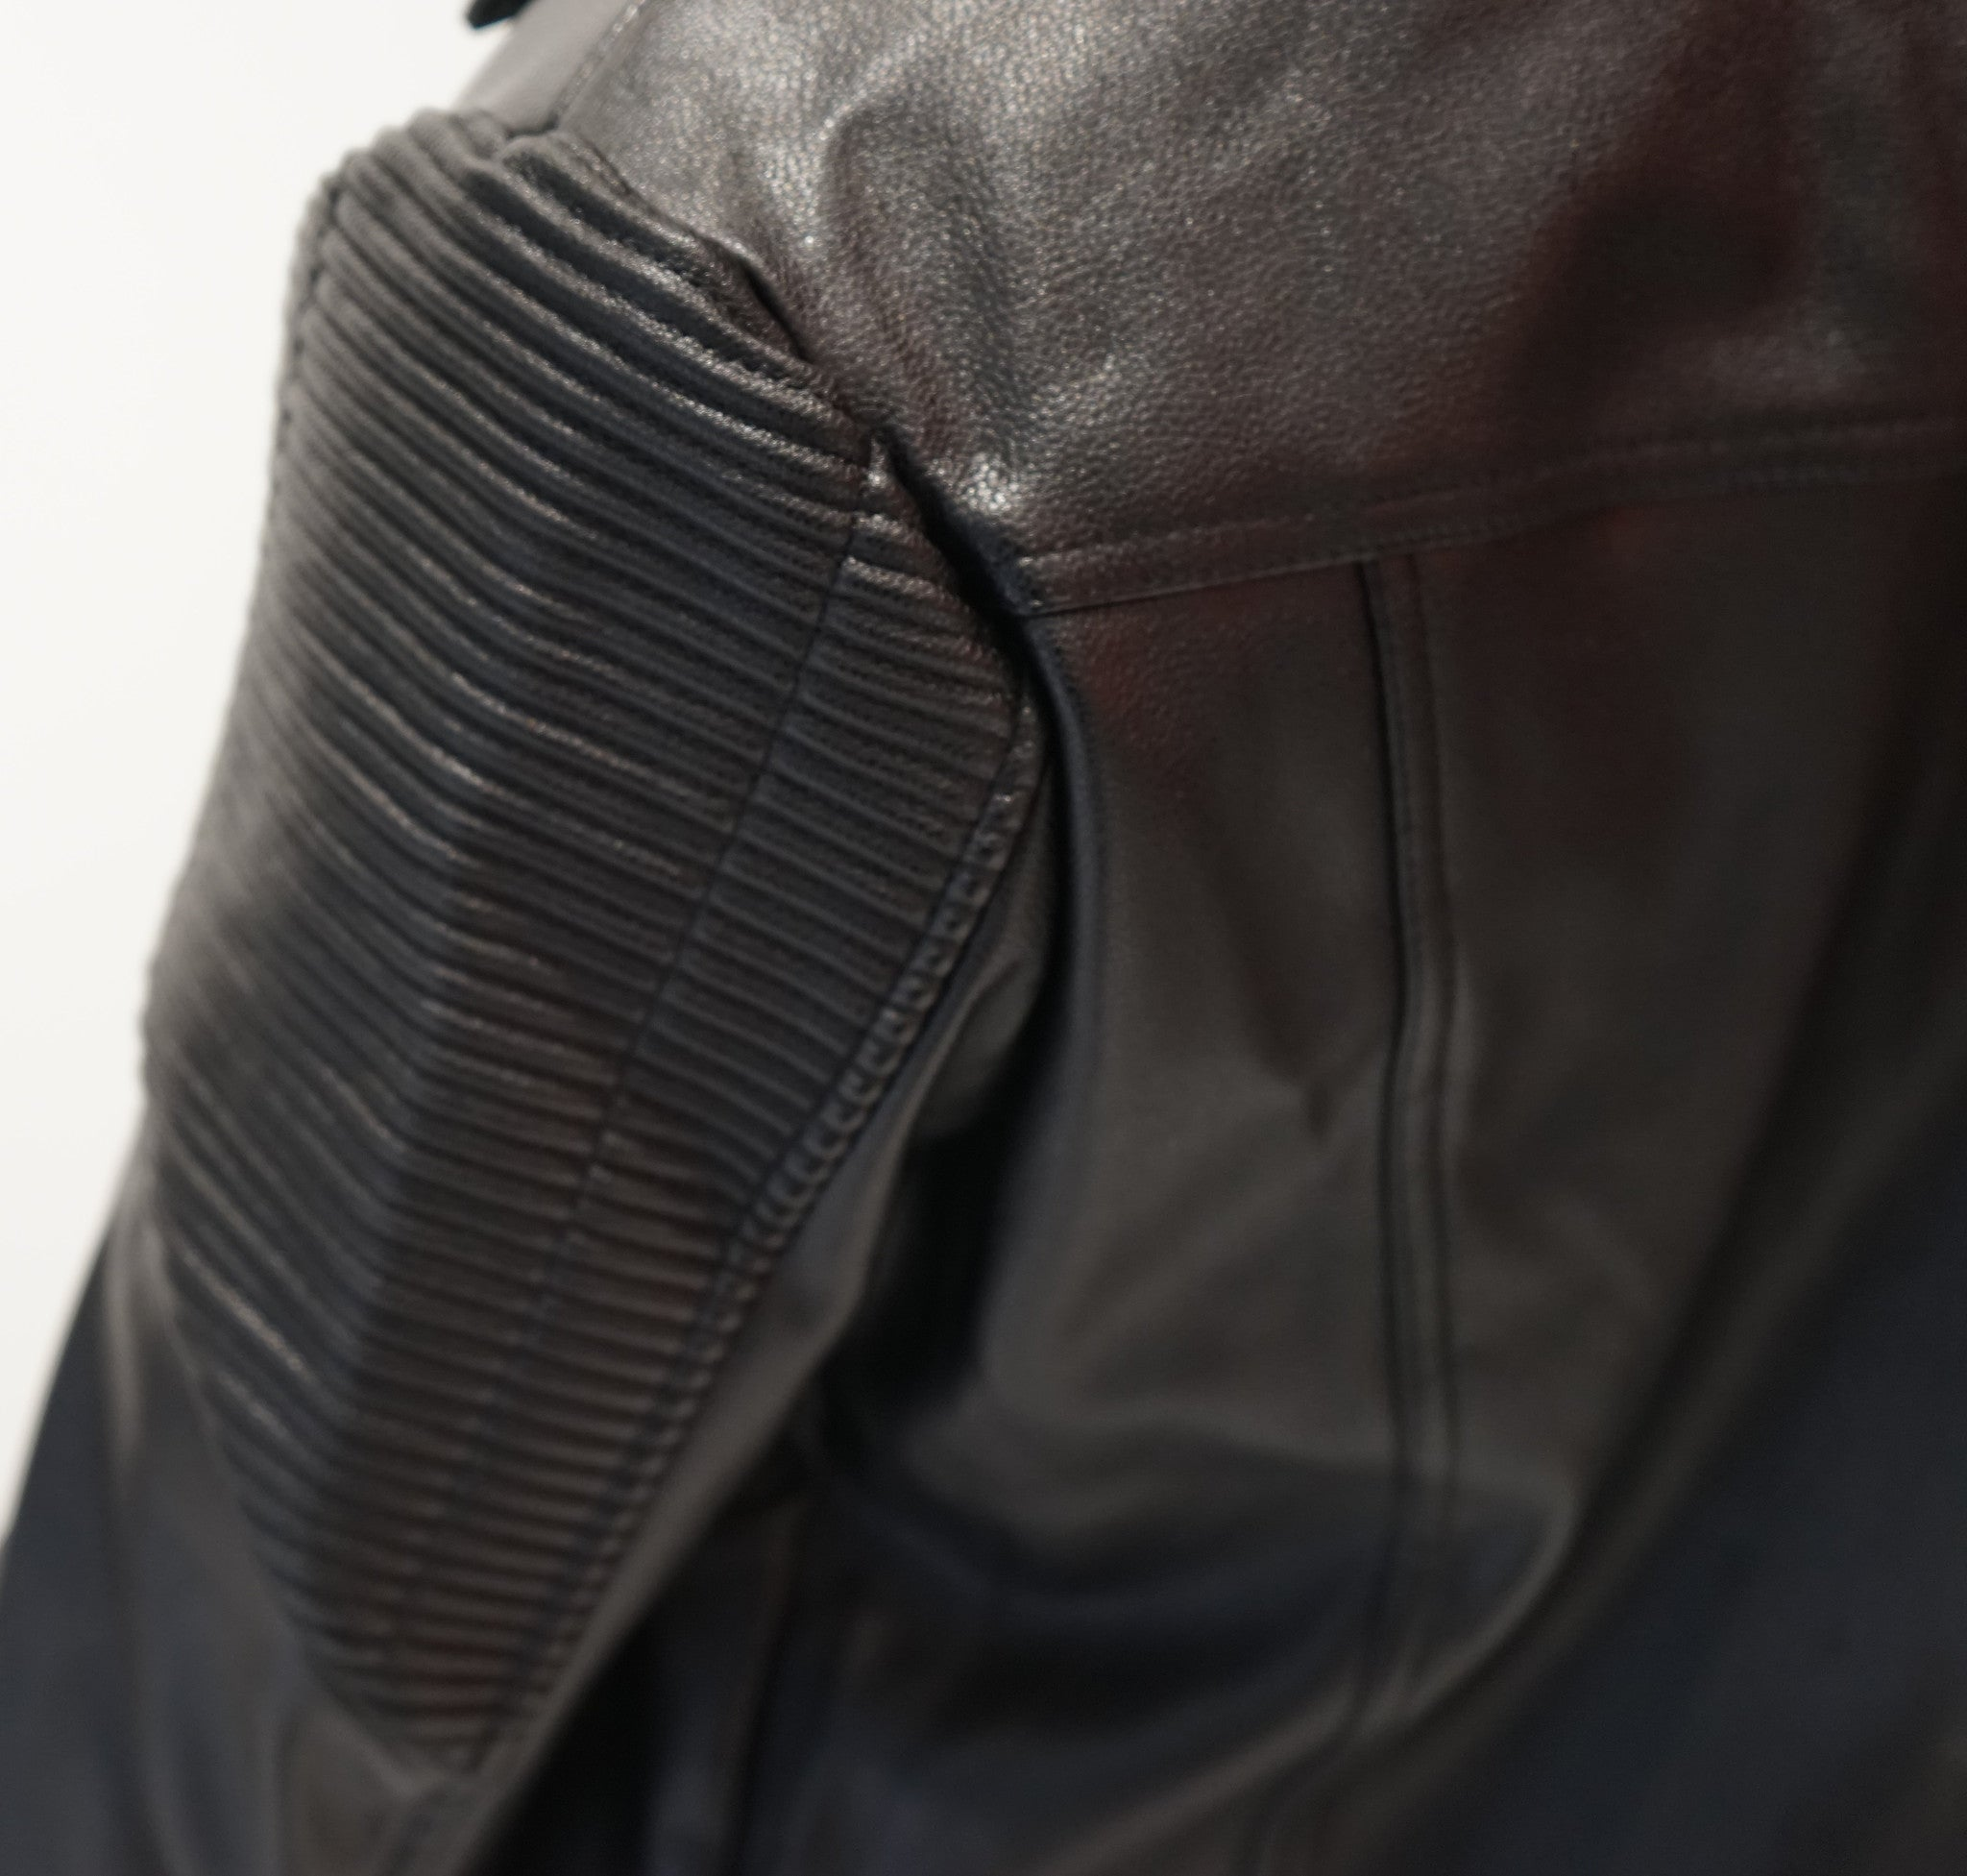 Ribbed Black Leather Biker Jacket - Nokwal